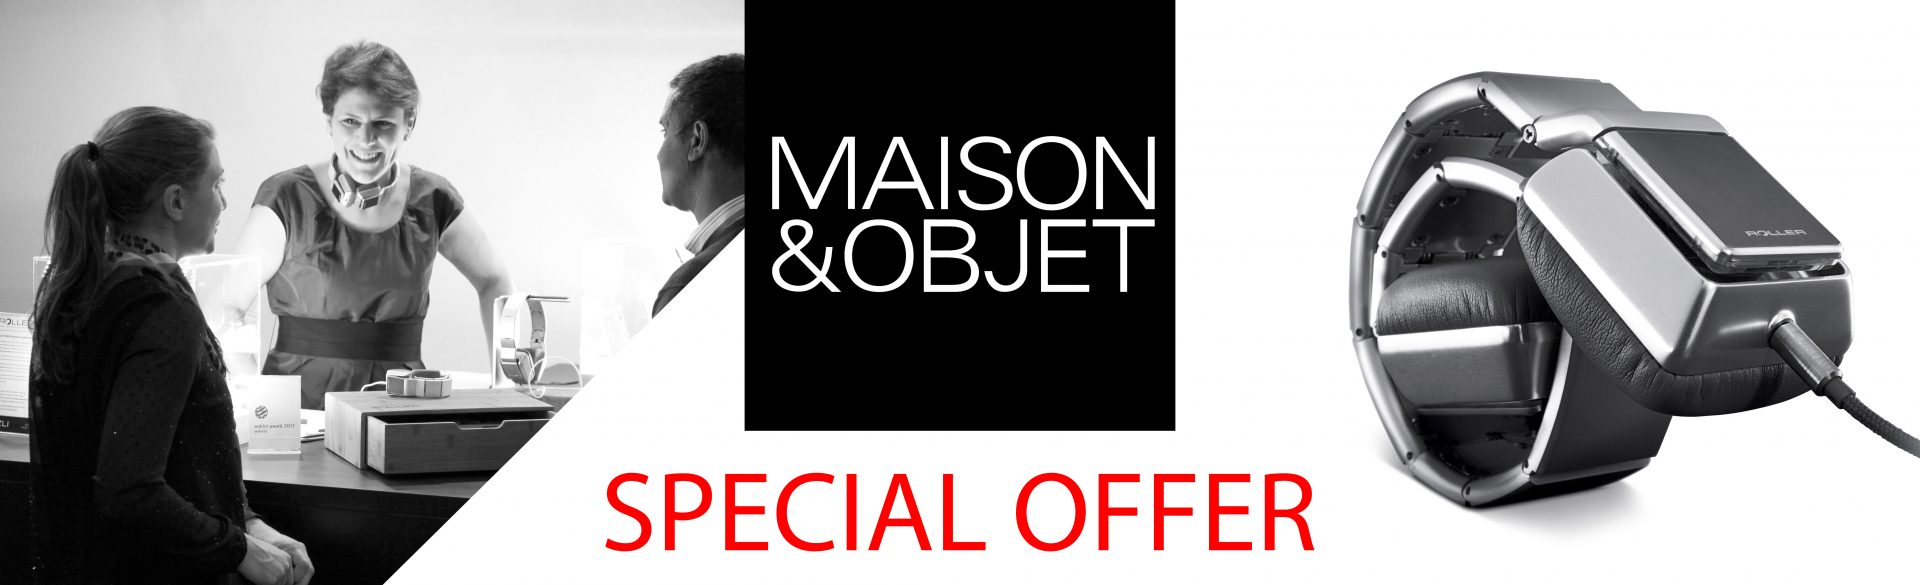 MAISON & OBJET SHOW 2019 SPECIAL OFFER!